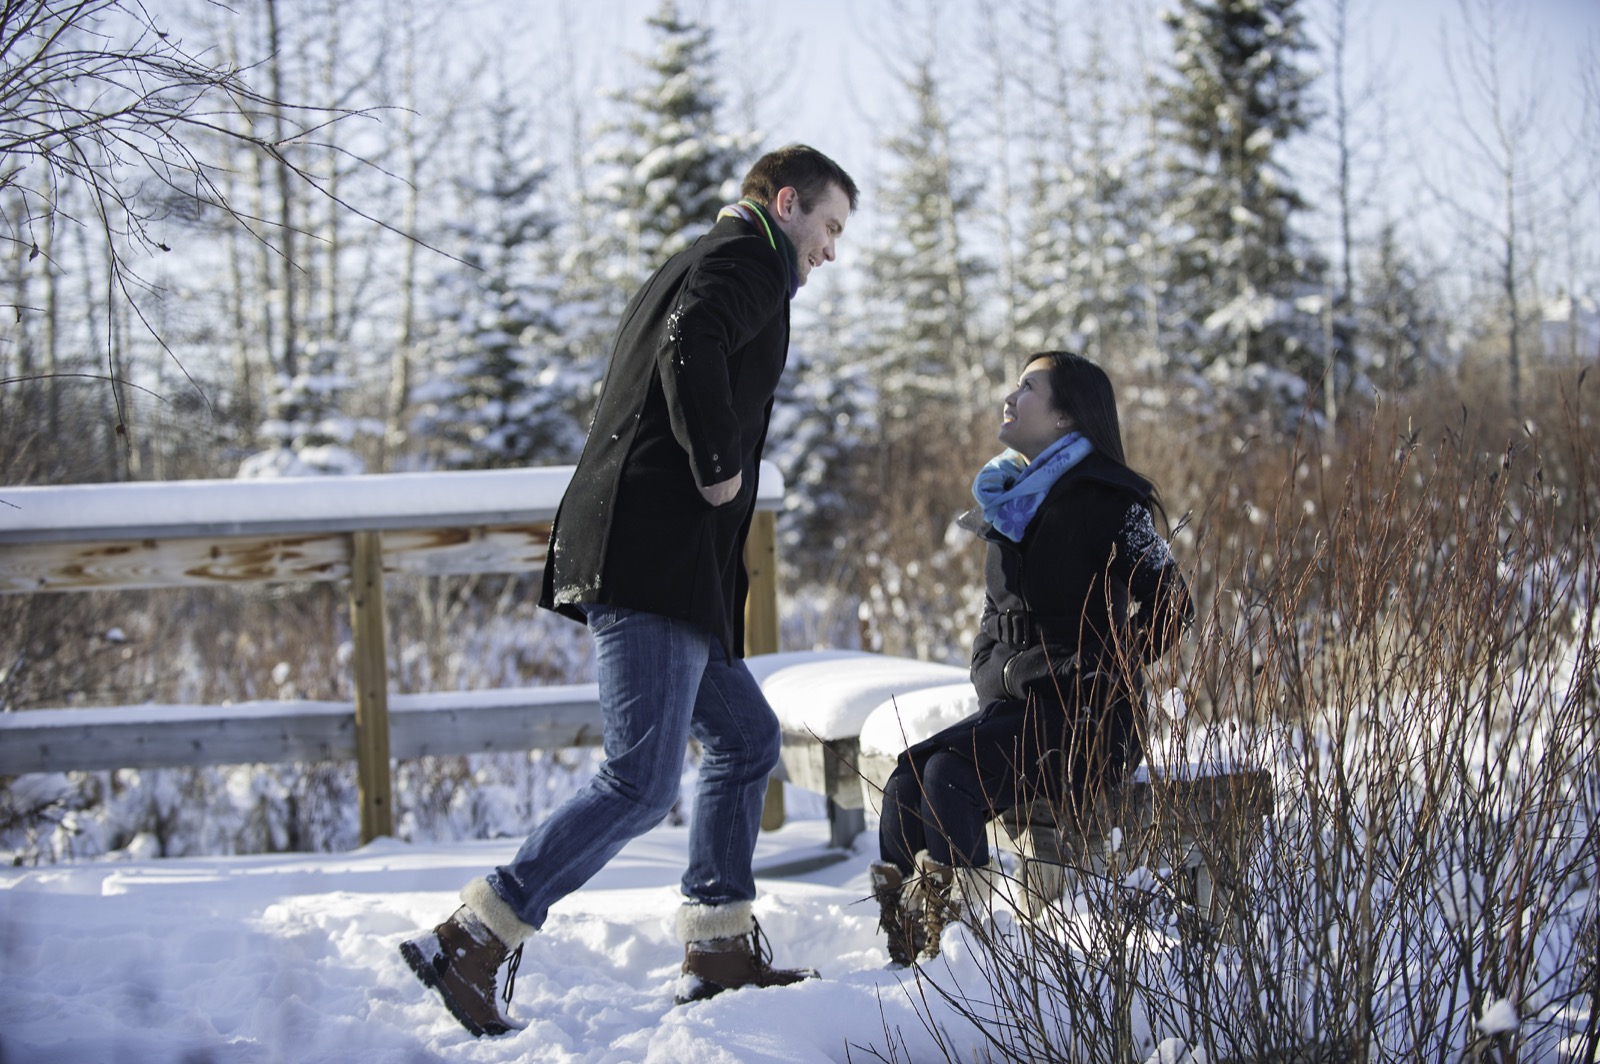 victoria-wedding-photographers-calgary-winter-engagement-proposal-12.jpg